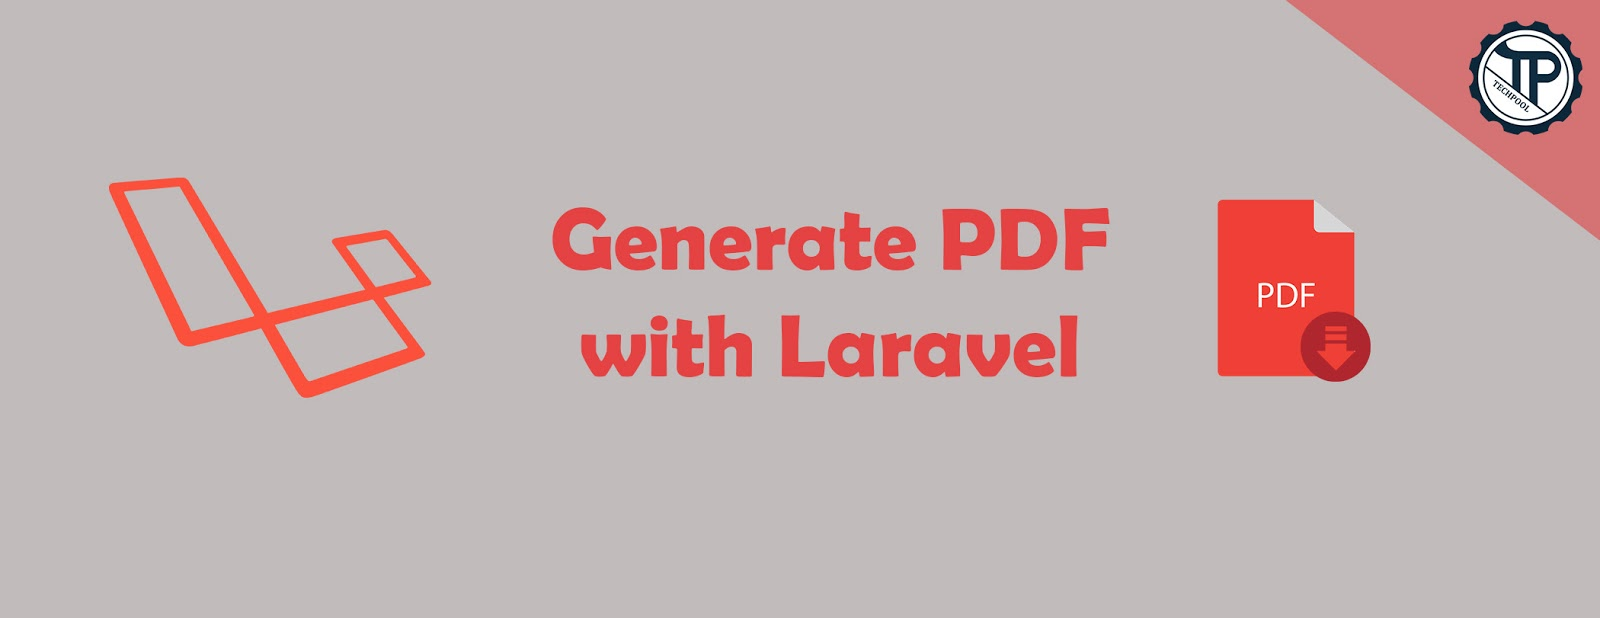 Generate PDF using TCPDF library with Laravel